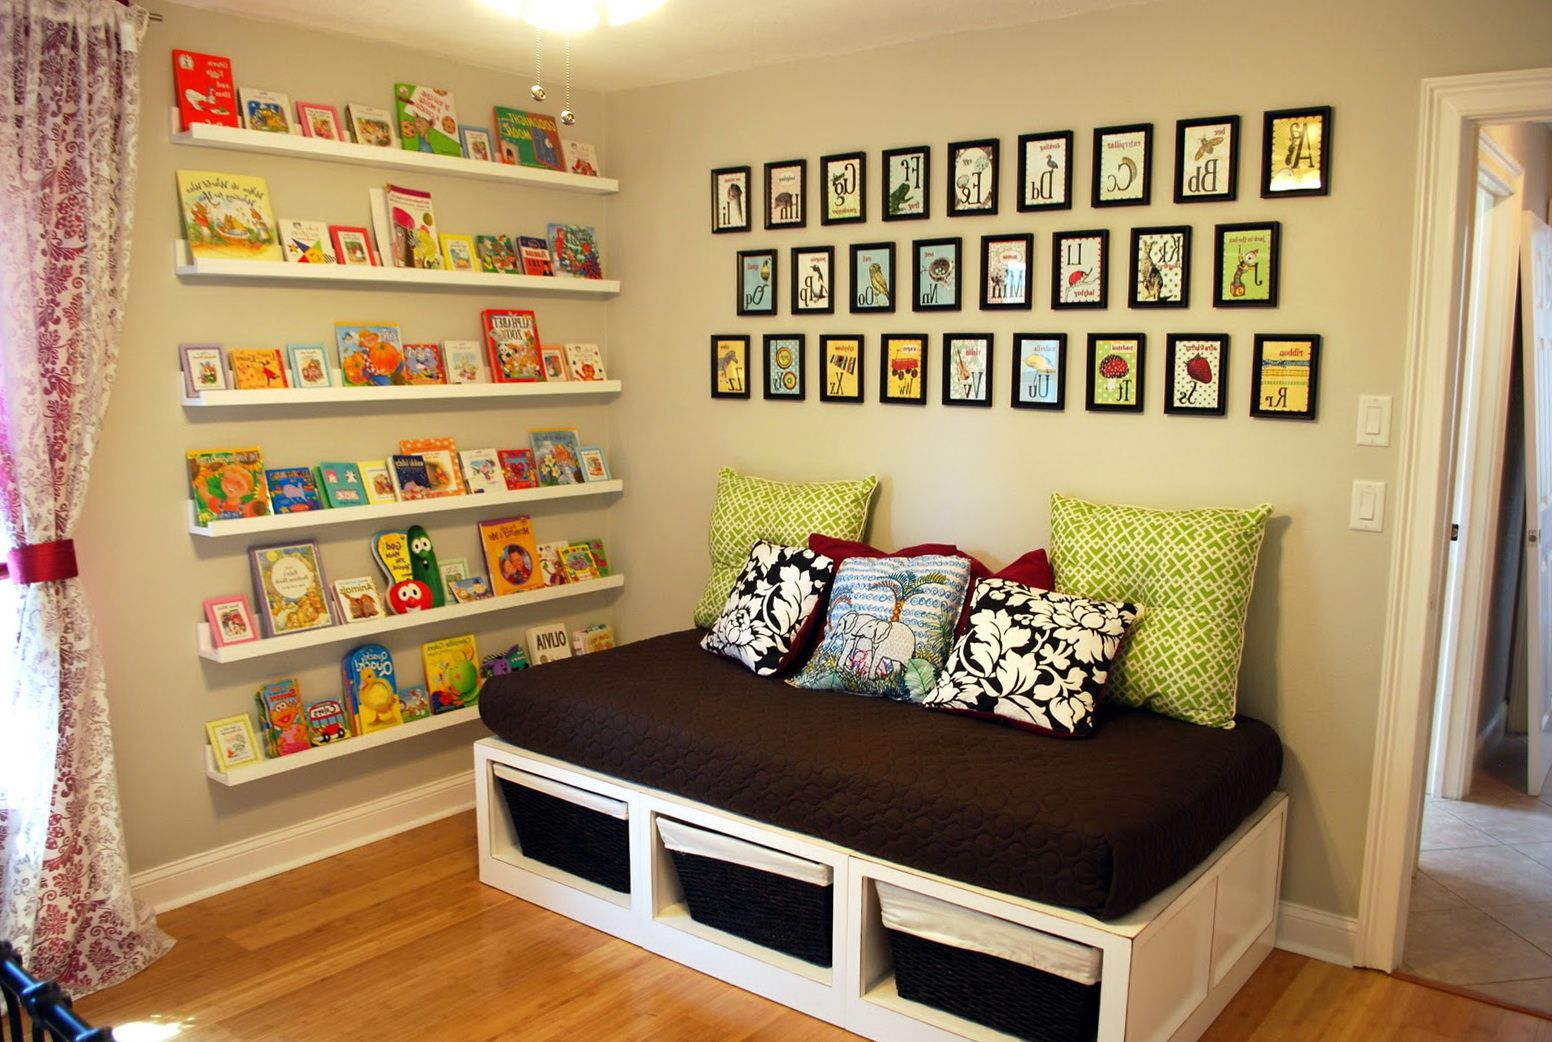 Childrens Wall Mounted Bookshelves For Room | Wall Mounted ...